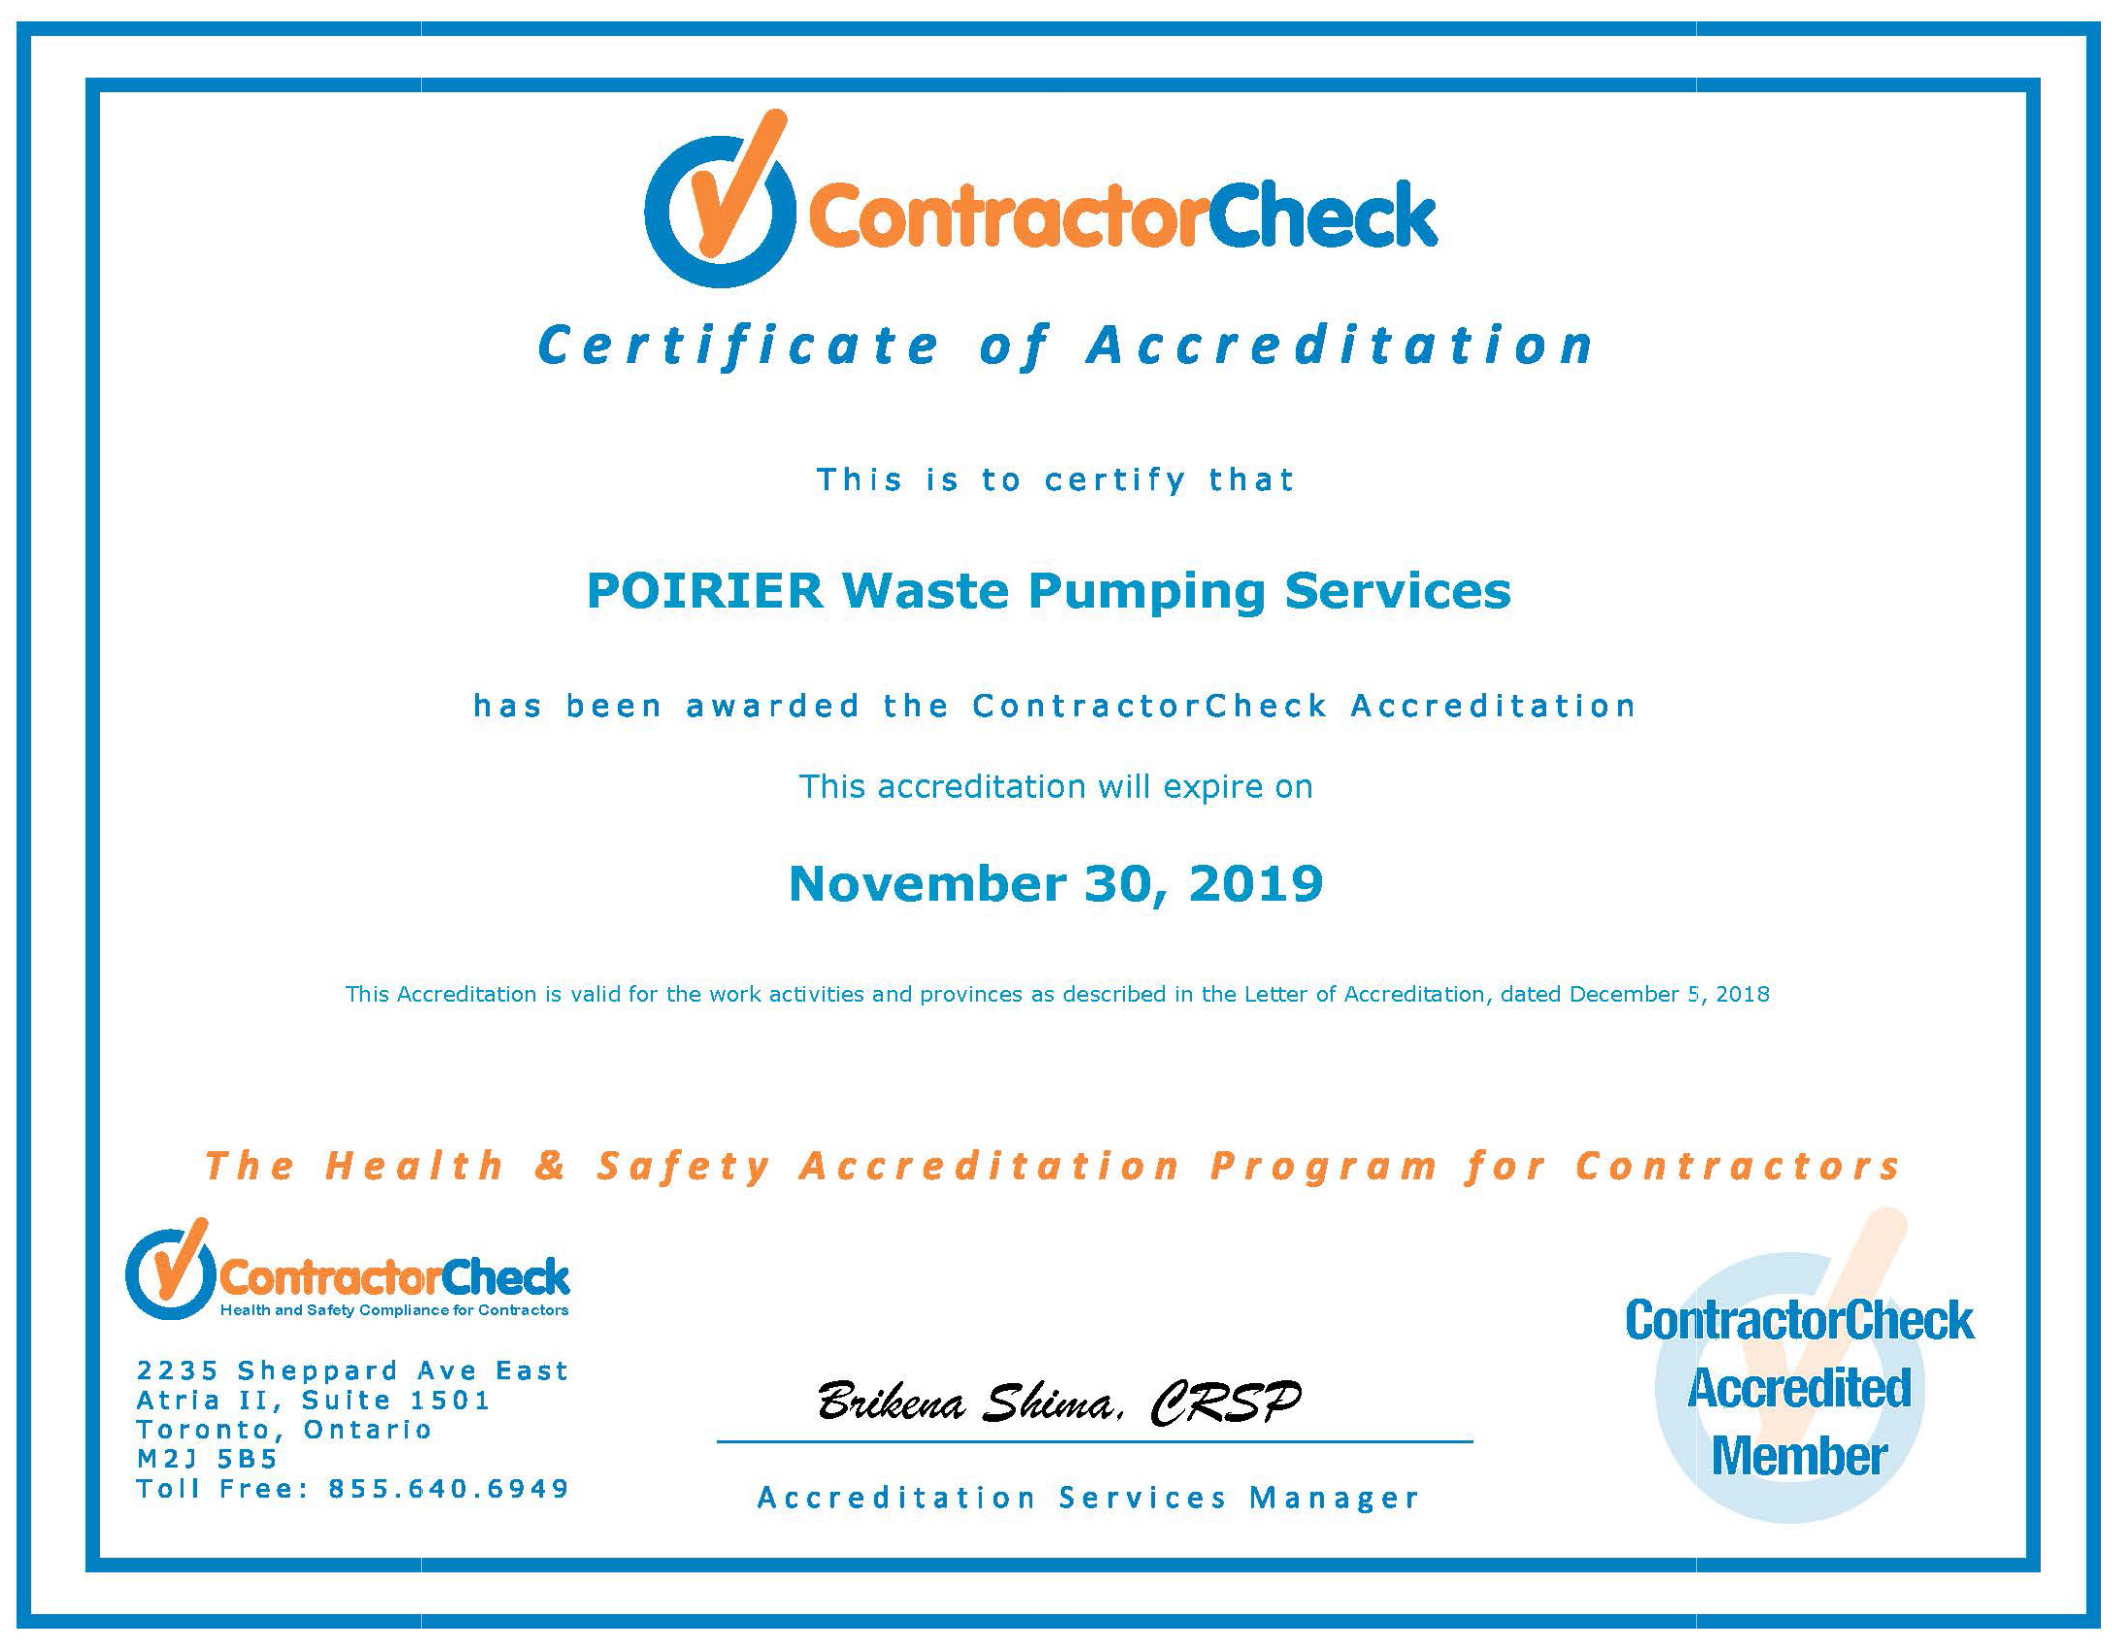 Contractors-Check-Accreditation